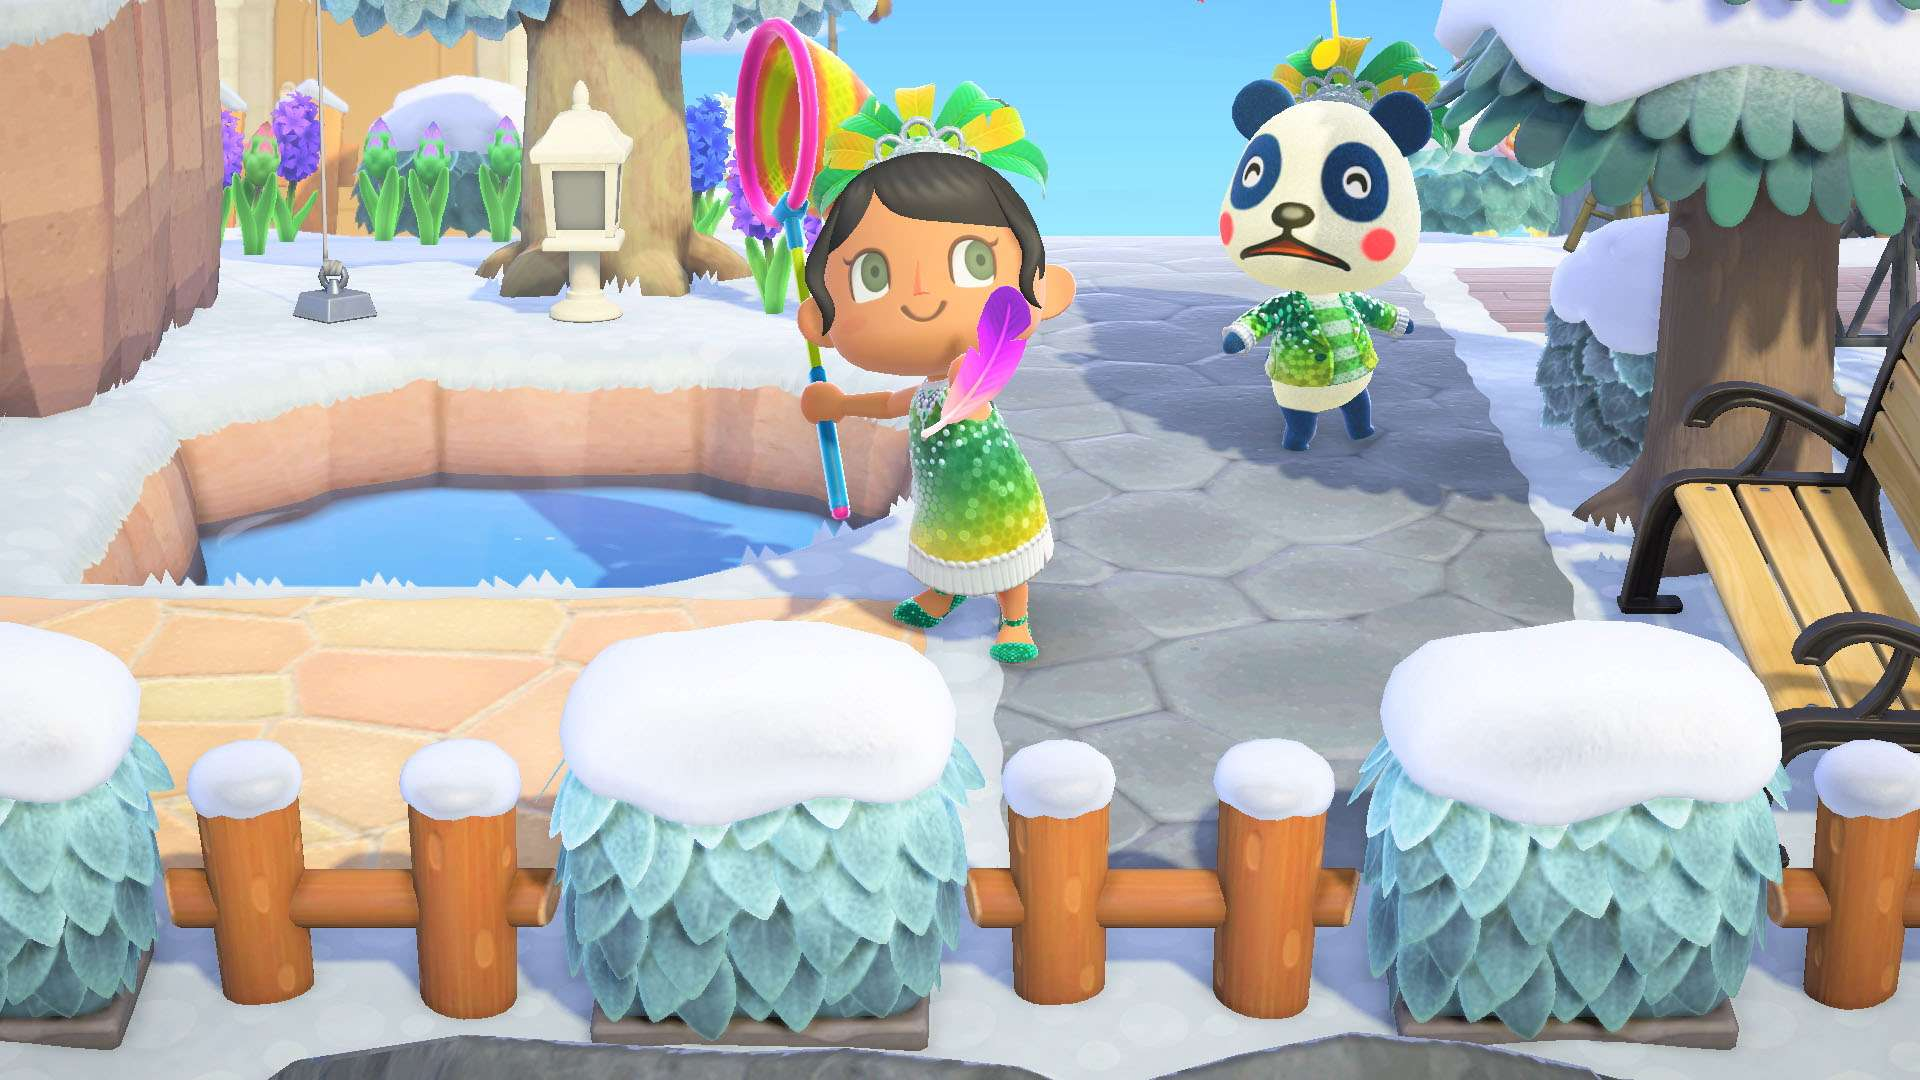 Animal Crossing New Horizons Carnaval Actualizacion 1 - El Carnaval llega a Animal Crossing: New Horizons